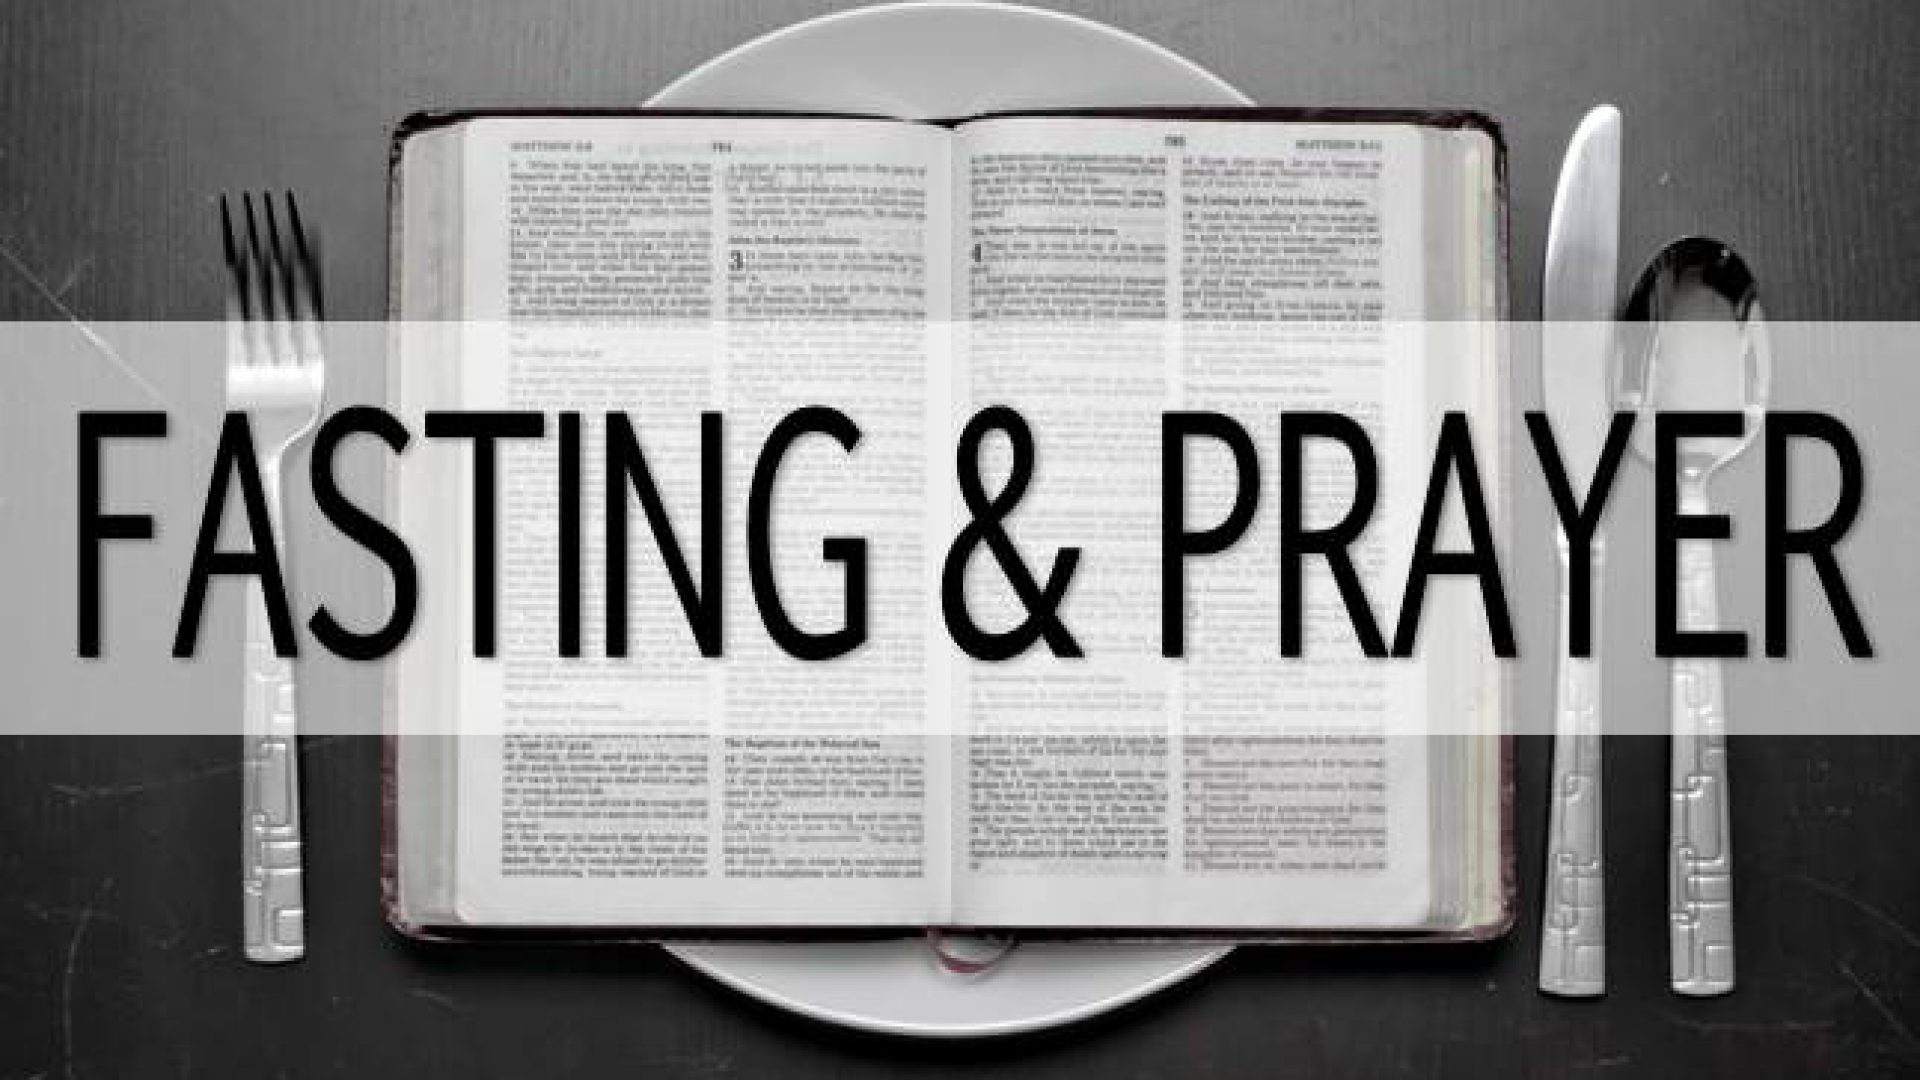 THREE DAYS PRAYER AND FASTING